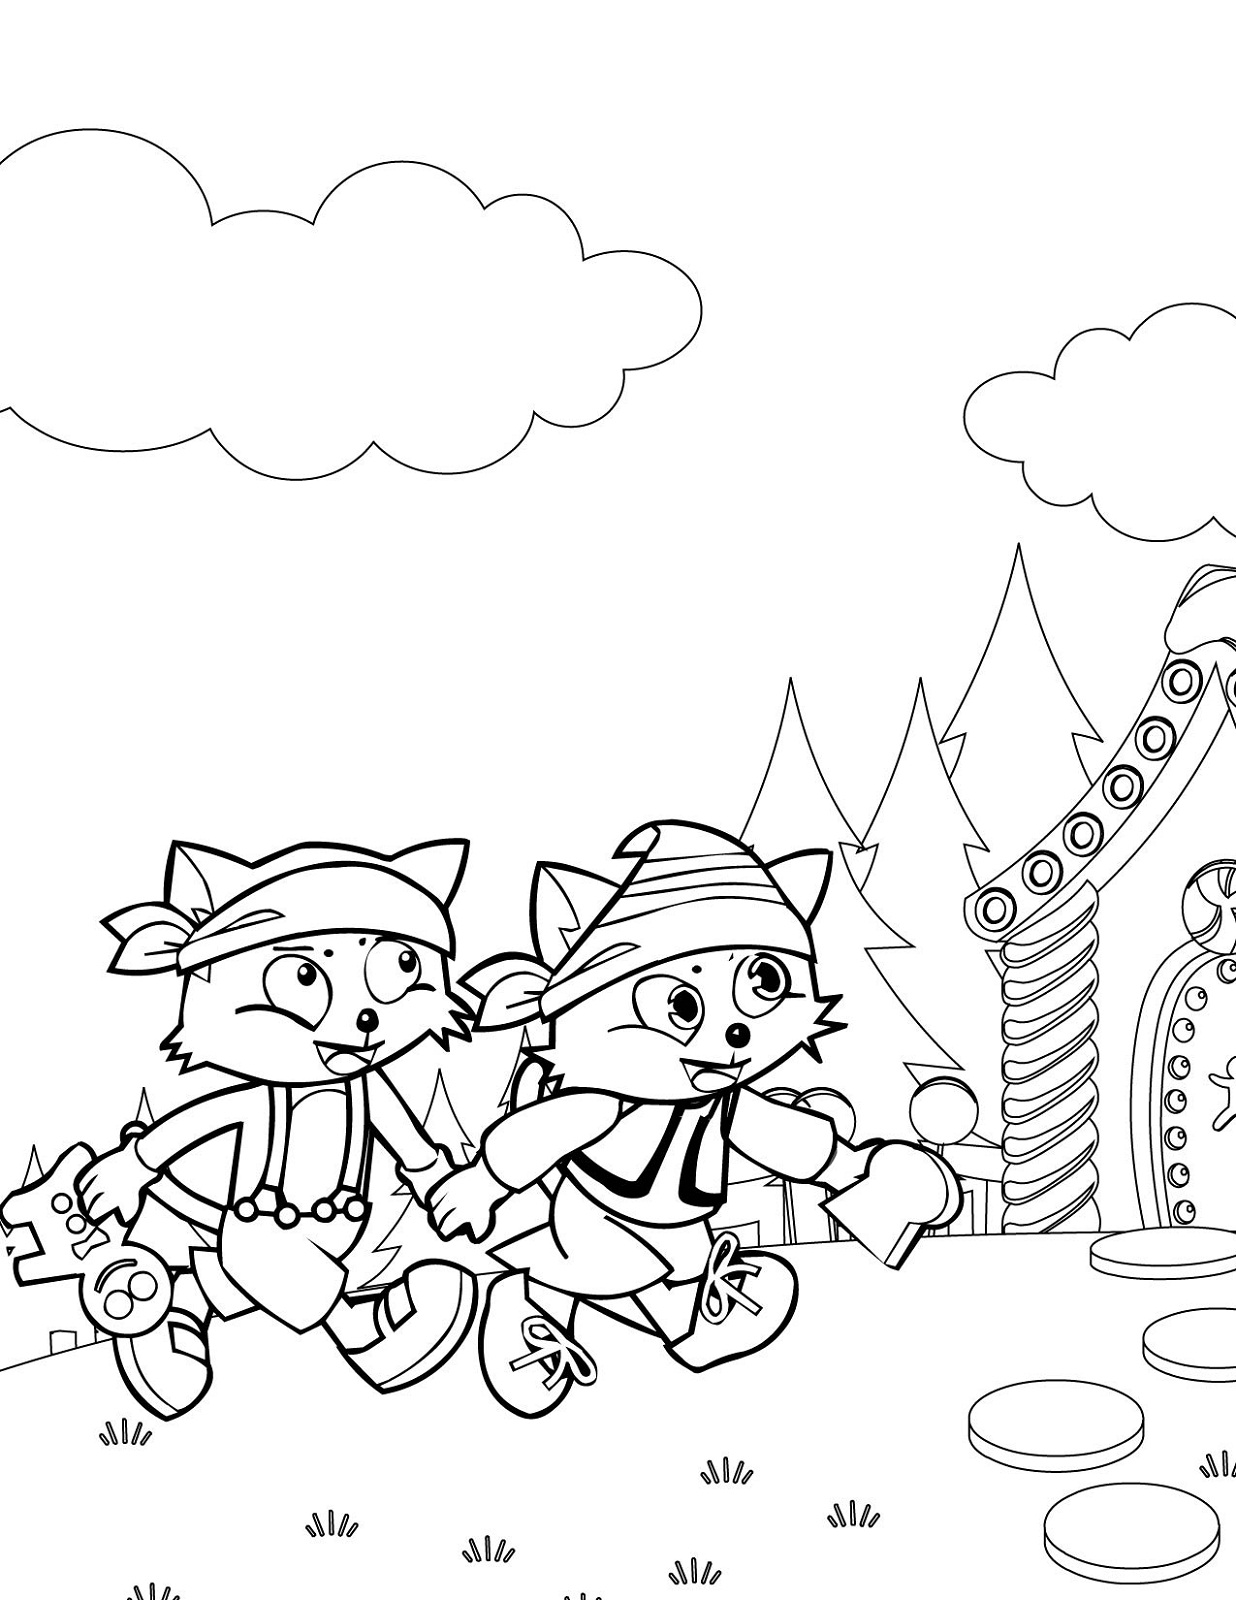 hansel-and-gretel-activities-coloring-page